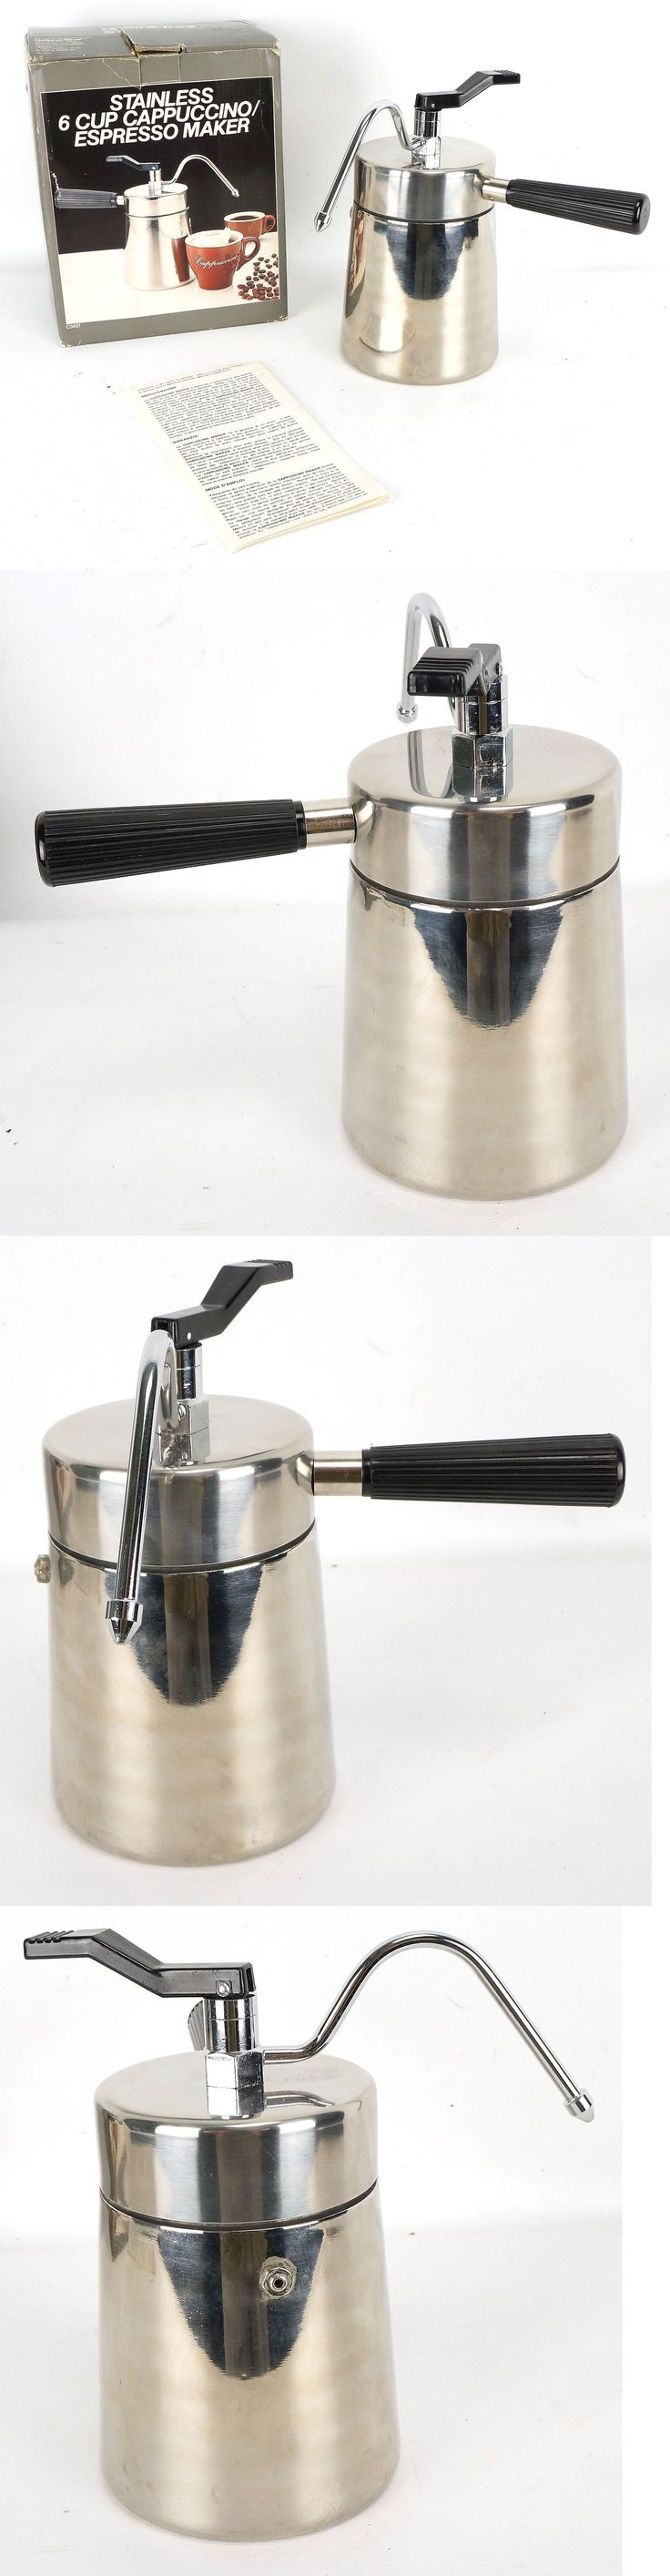 Percolators and Moka Pots 116012: National Silver Stainless 6 Cup Stovetop Cappuccino Espresso Maker 1984 -> BUY IT NOW ONLY: $44.99 on eBay!